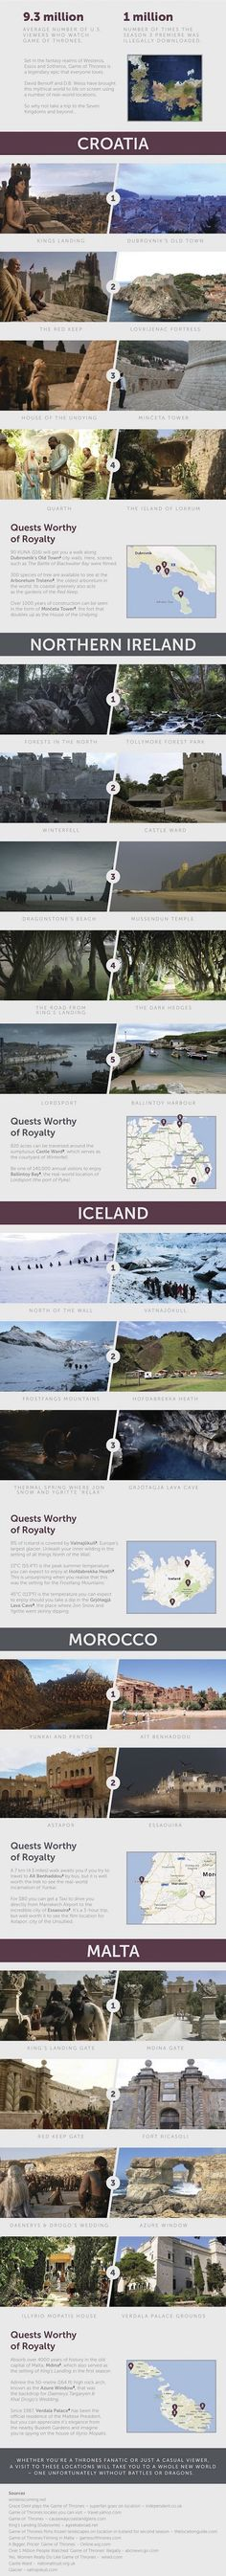 The Game of Thrones Travel Guide - Wondering where your favourite Game of Thrones scenes were shot? So far HBO's cult series has cast its mythical, magical spell across Iceland, Northern Ireland, Malta, Croatia, Spain and Morocco. Whether you're a stark-raving-mad Thrones fanatic or just a casual viewer, with this travel guide you can jetset your way to Westeros straight into a real-life location from the Seven Kingdoms. See more on the blog!